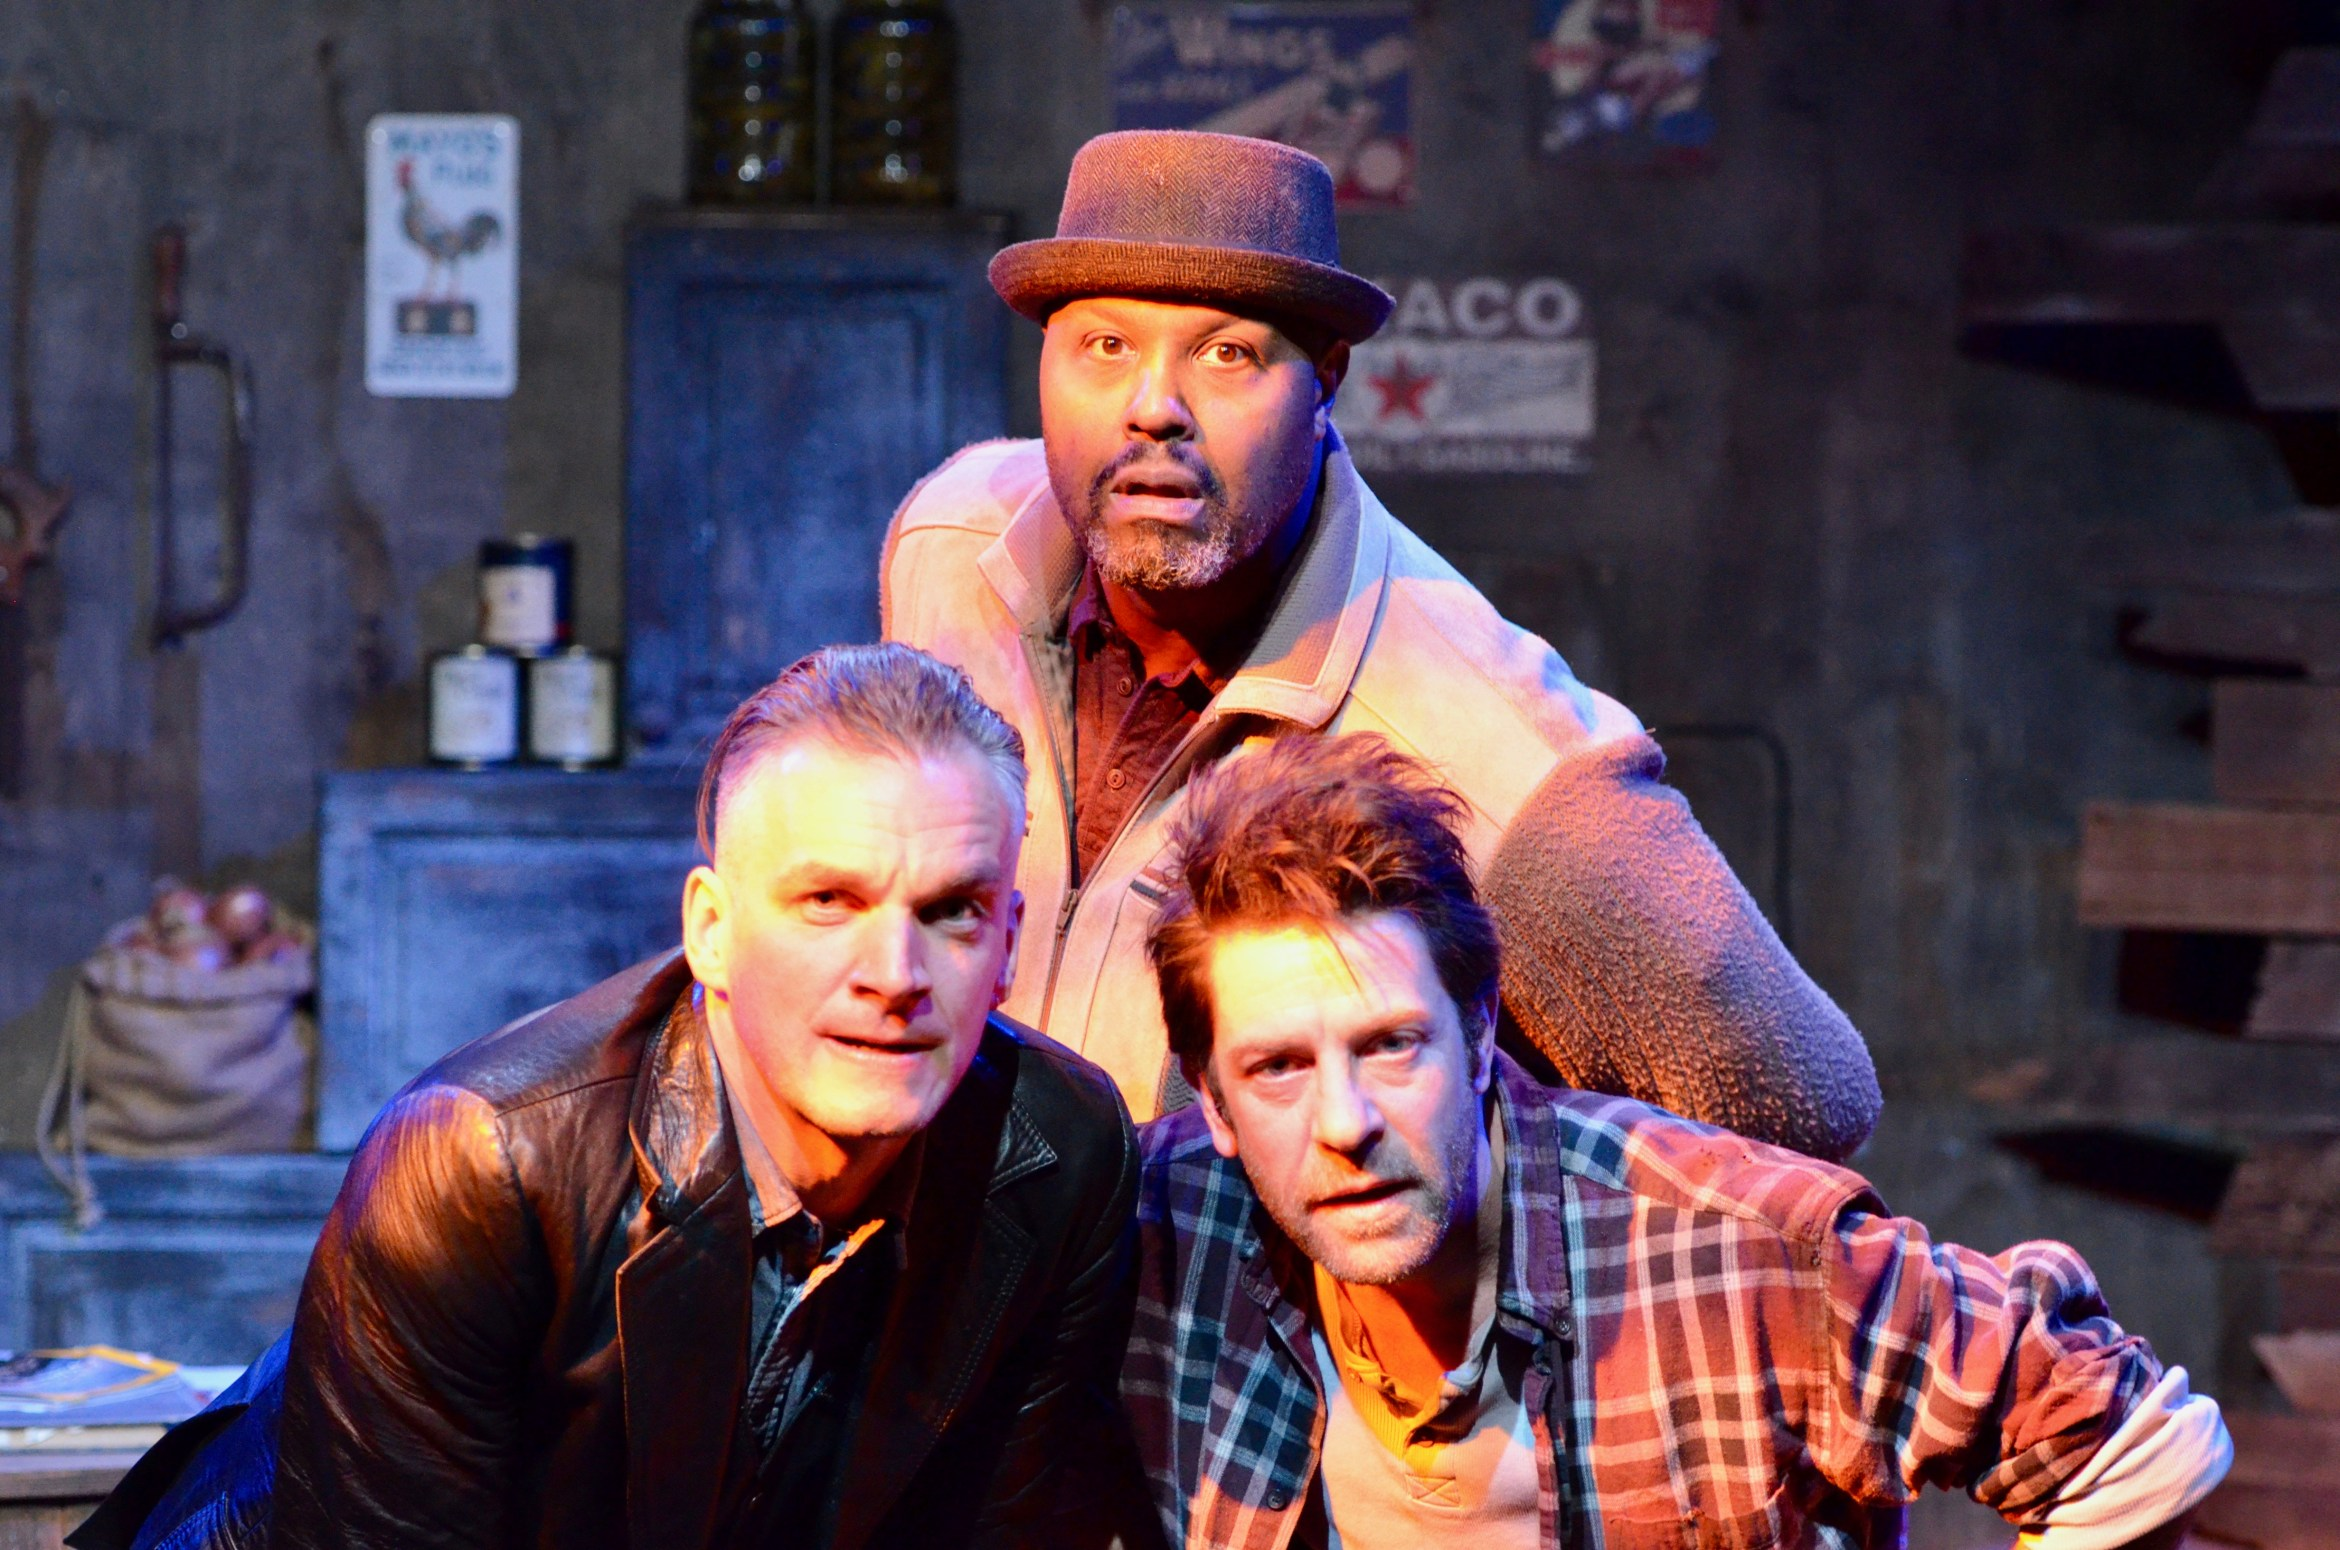 charlie-allen-andrew-st-clair-james-hamish-clark-l-r-in-the-albatross-3rd-main-at-park-theatre-photo-by-sacha-queiroz-0088